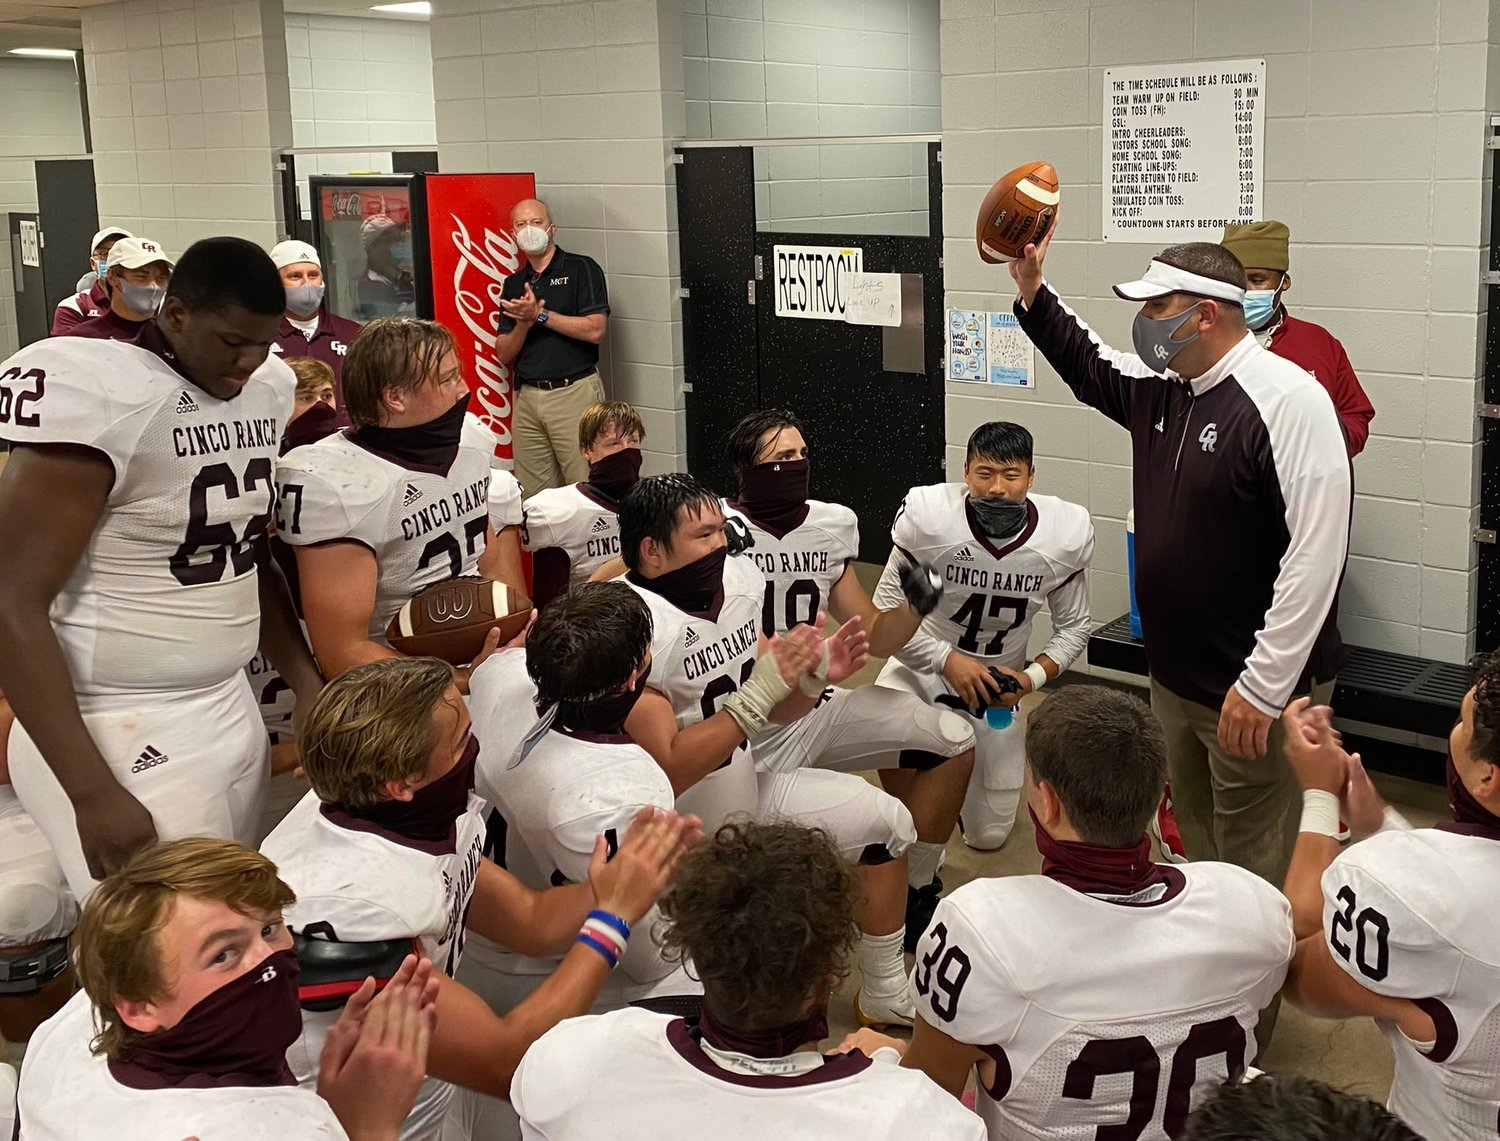 Second-year Cinco Ranch head coach Chris Dudley earned his first career head coaching win with a 21-17 decision against Mayde Creek on Oct. 16 at Rhodes Stadium.